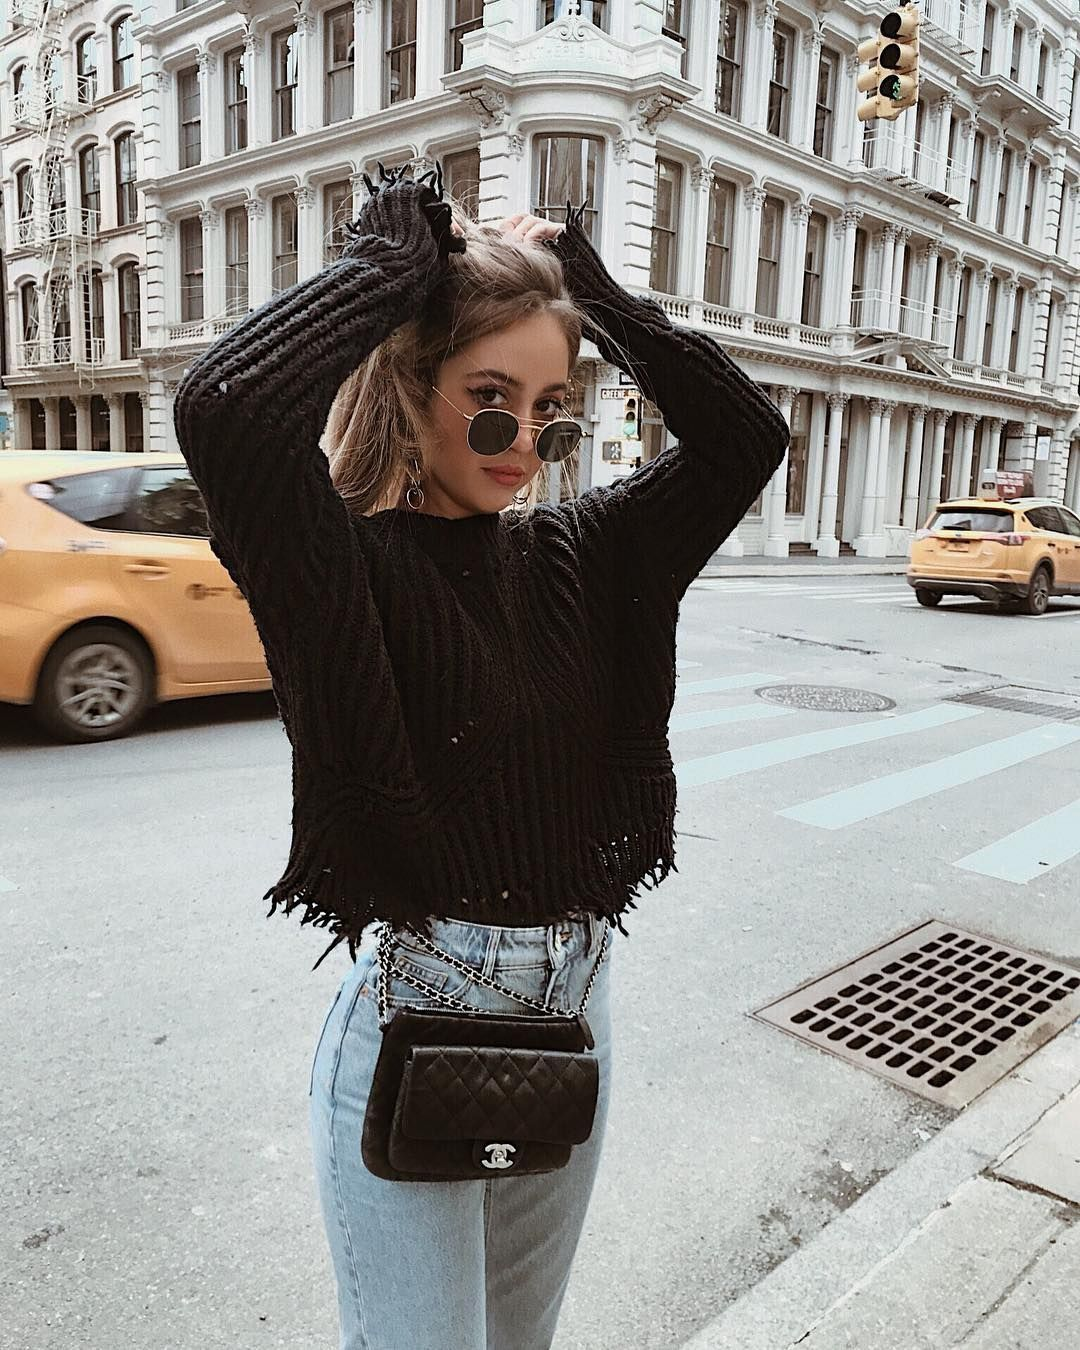 dbea411246 Pin by joannnaz on •Style Fashion• in 2019